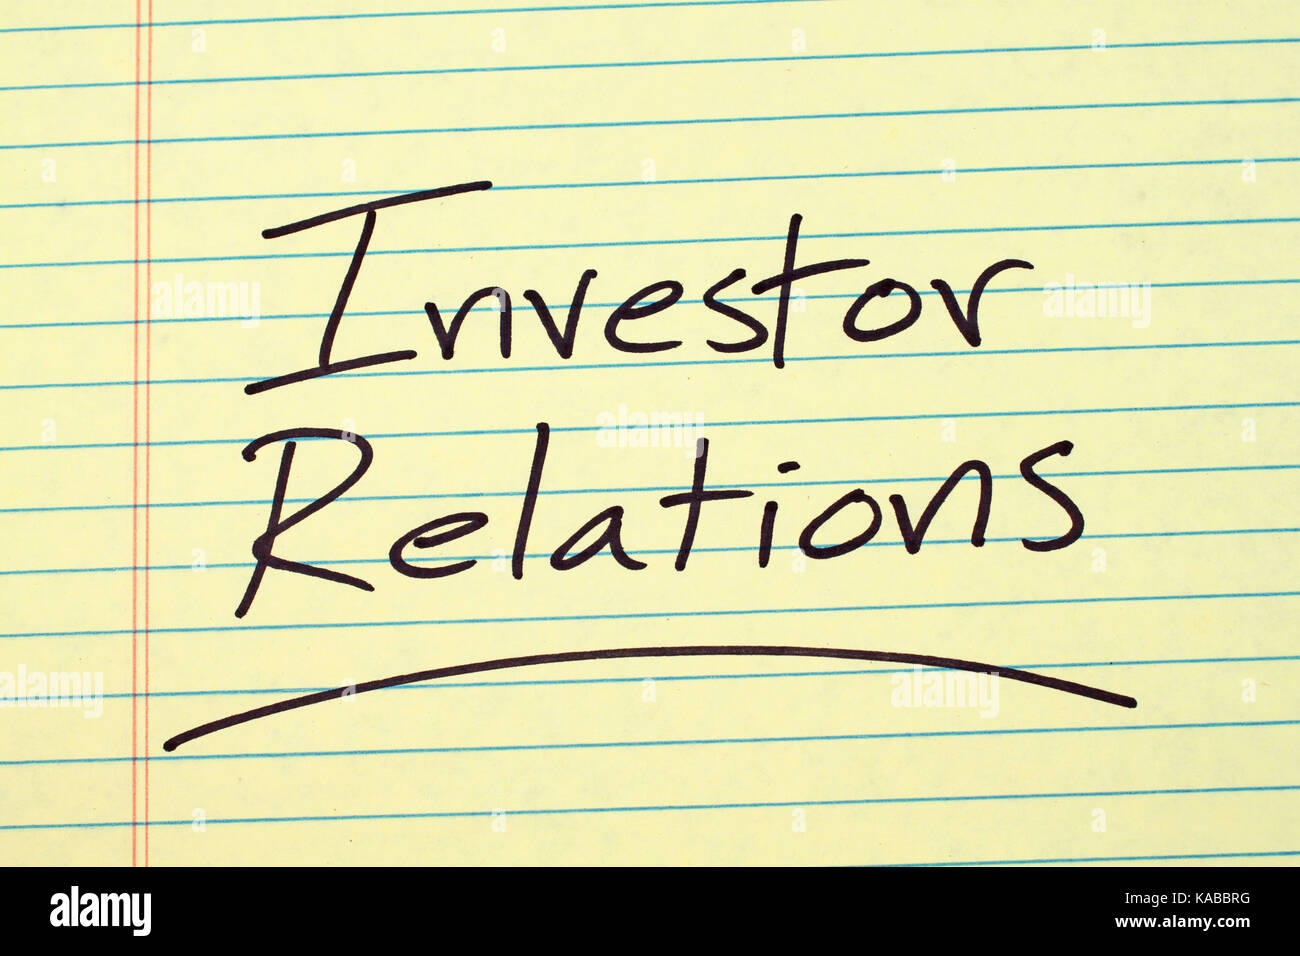 Investor relations stock photos investor relations stock images the word investor relations underlined on a yellow legal pad stock image kristyandbryce Images